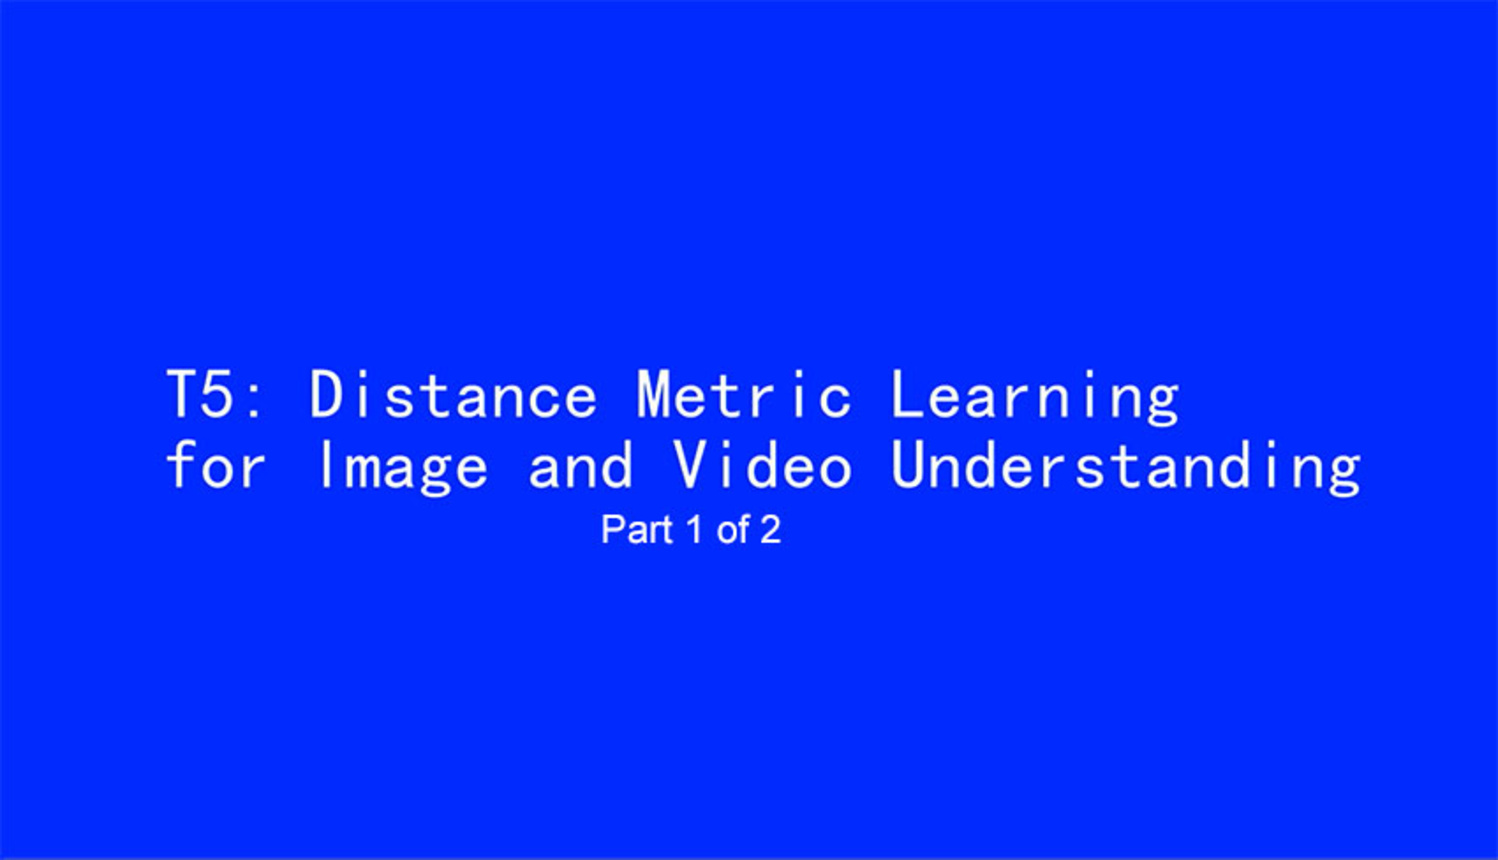 ICIP 2017 Tutorial - Distance Metric Learning for Image and Video Understanding [Part 1 of 2]